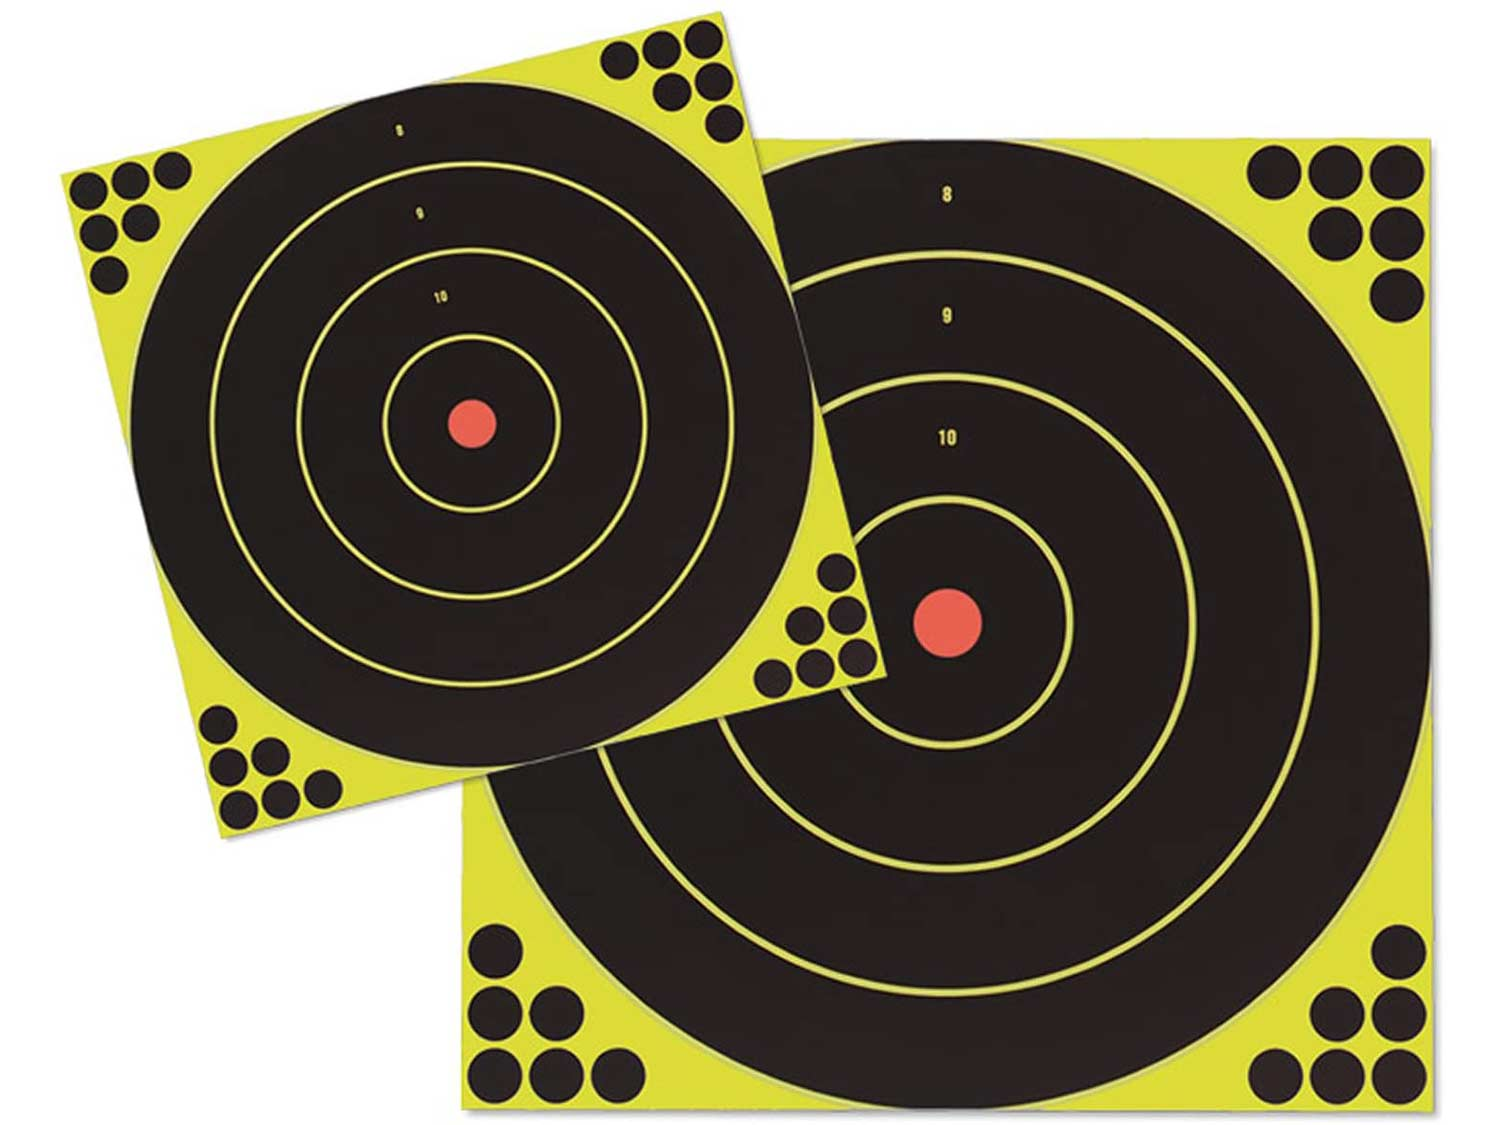 Two large birchwood casey targets used to measure shot groups.